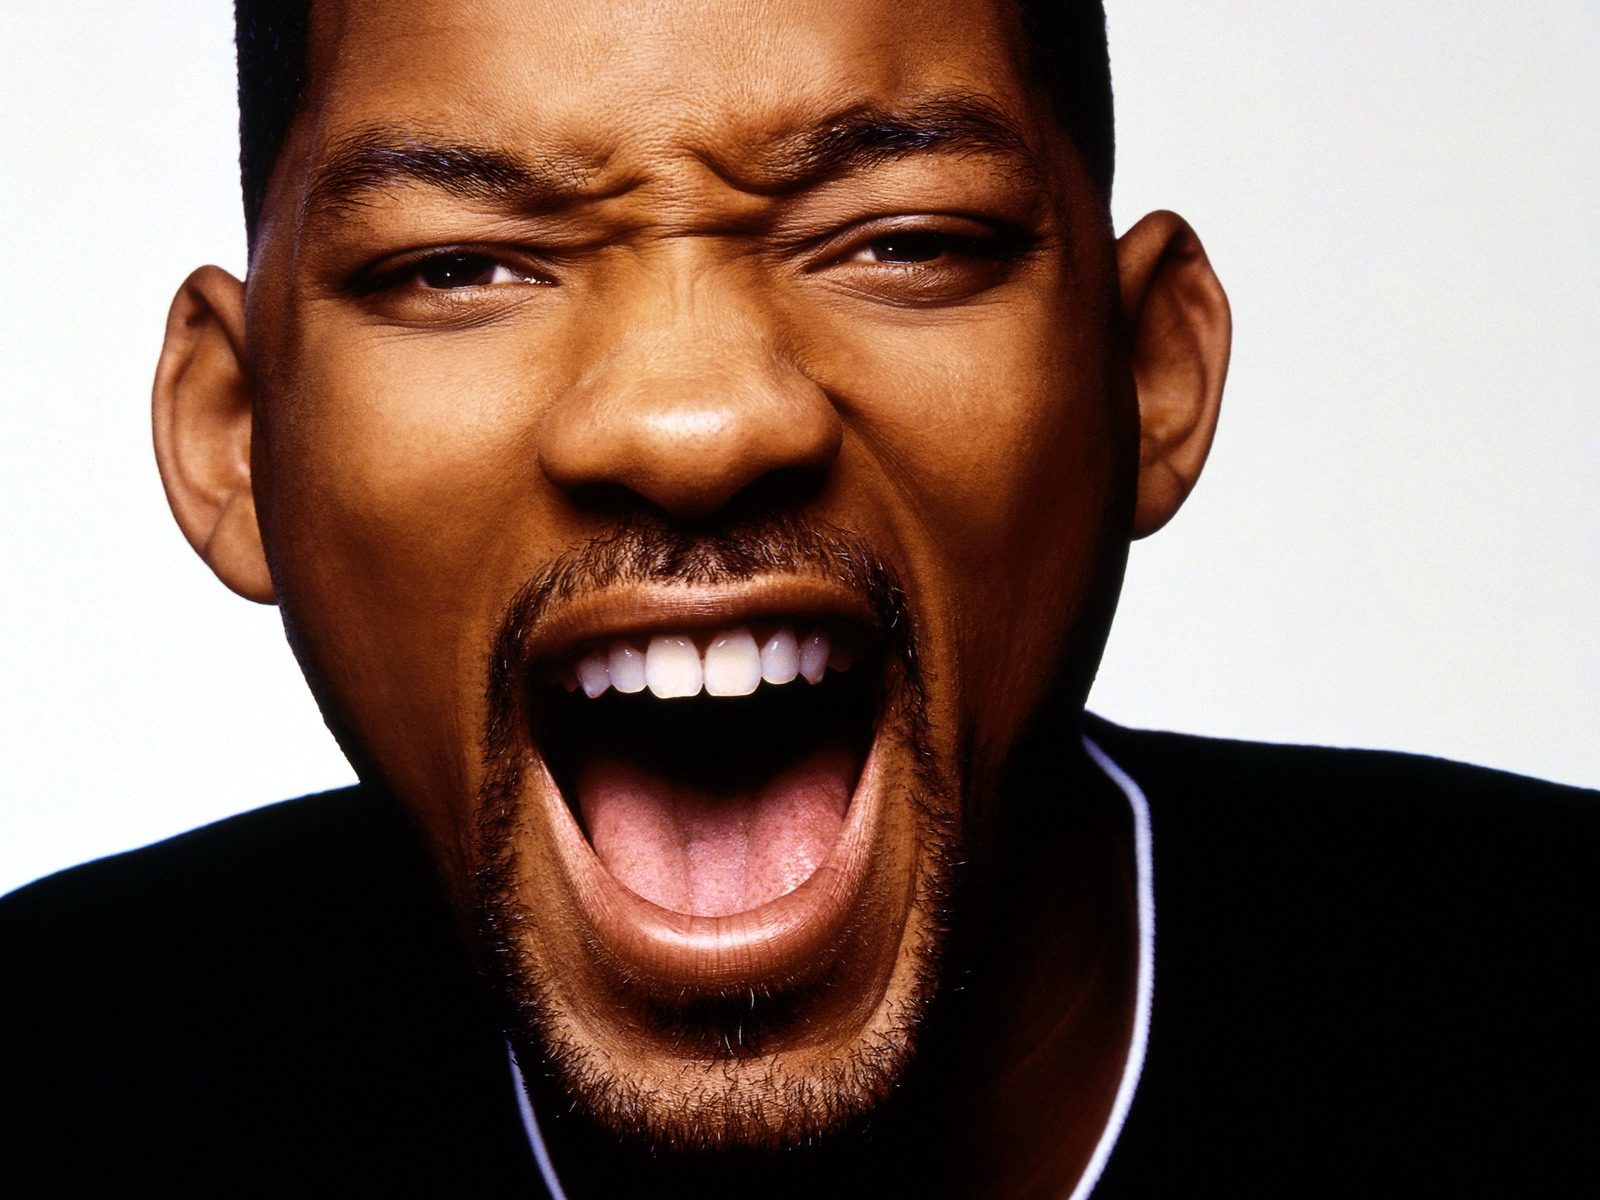 Will Smith: Will Smith Wallpapers High Resolution And Quality Download